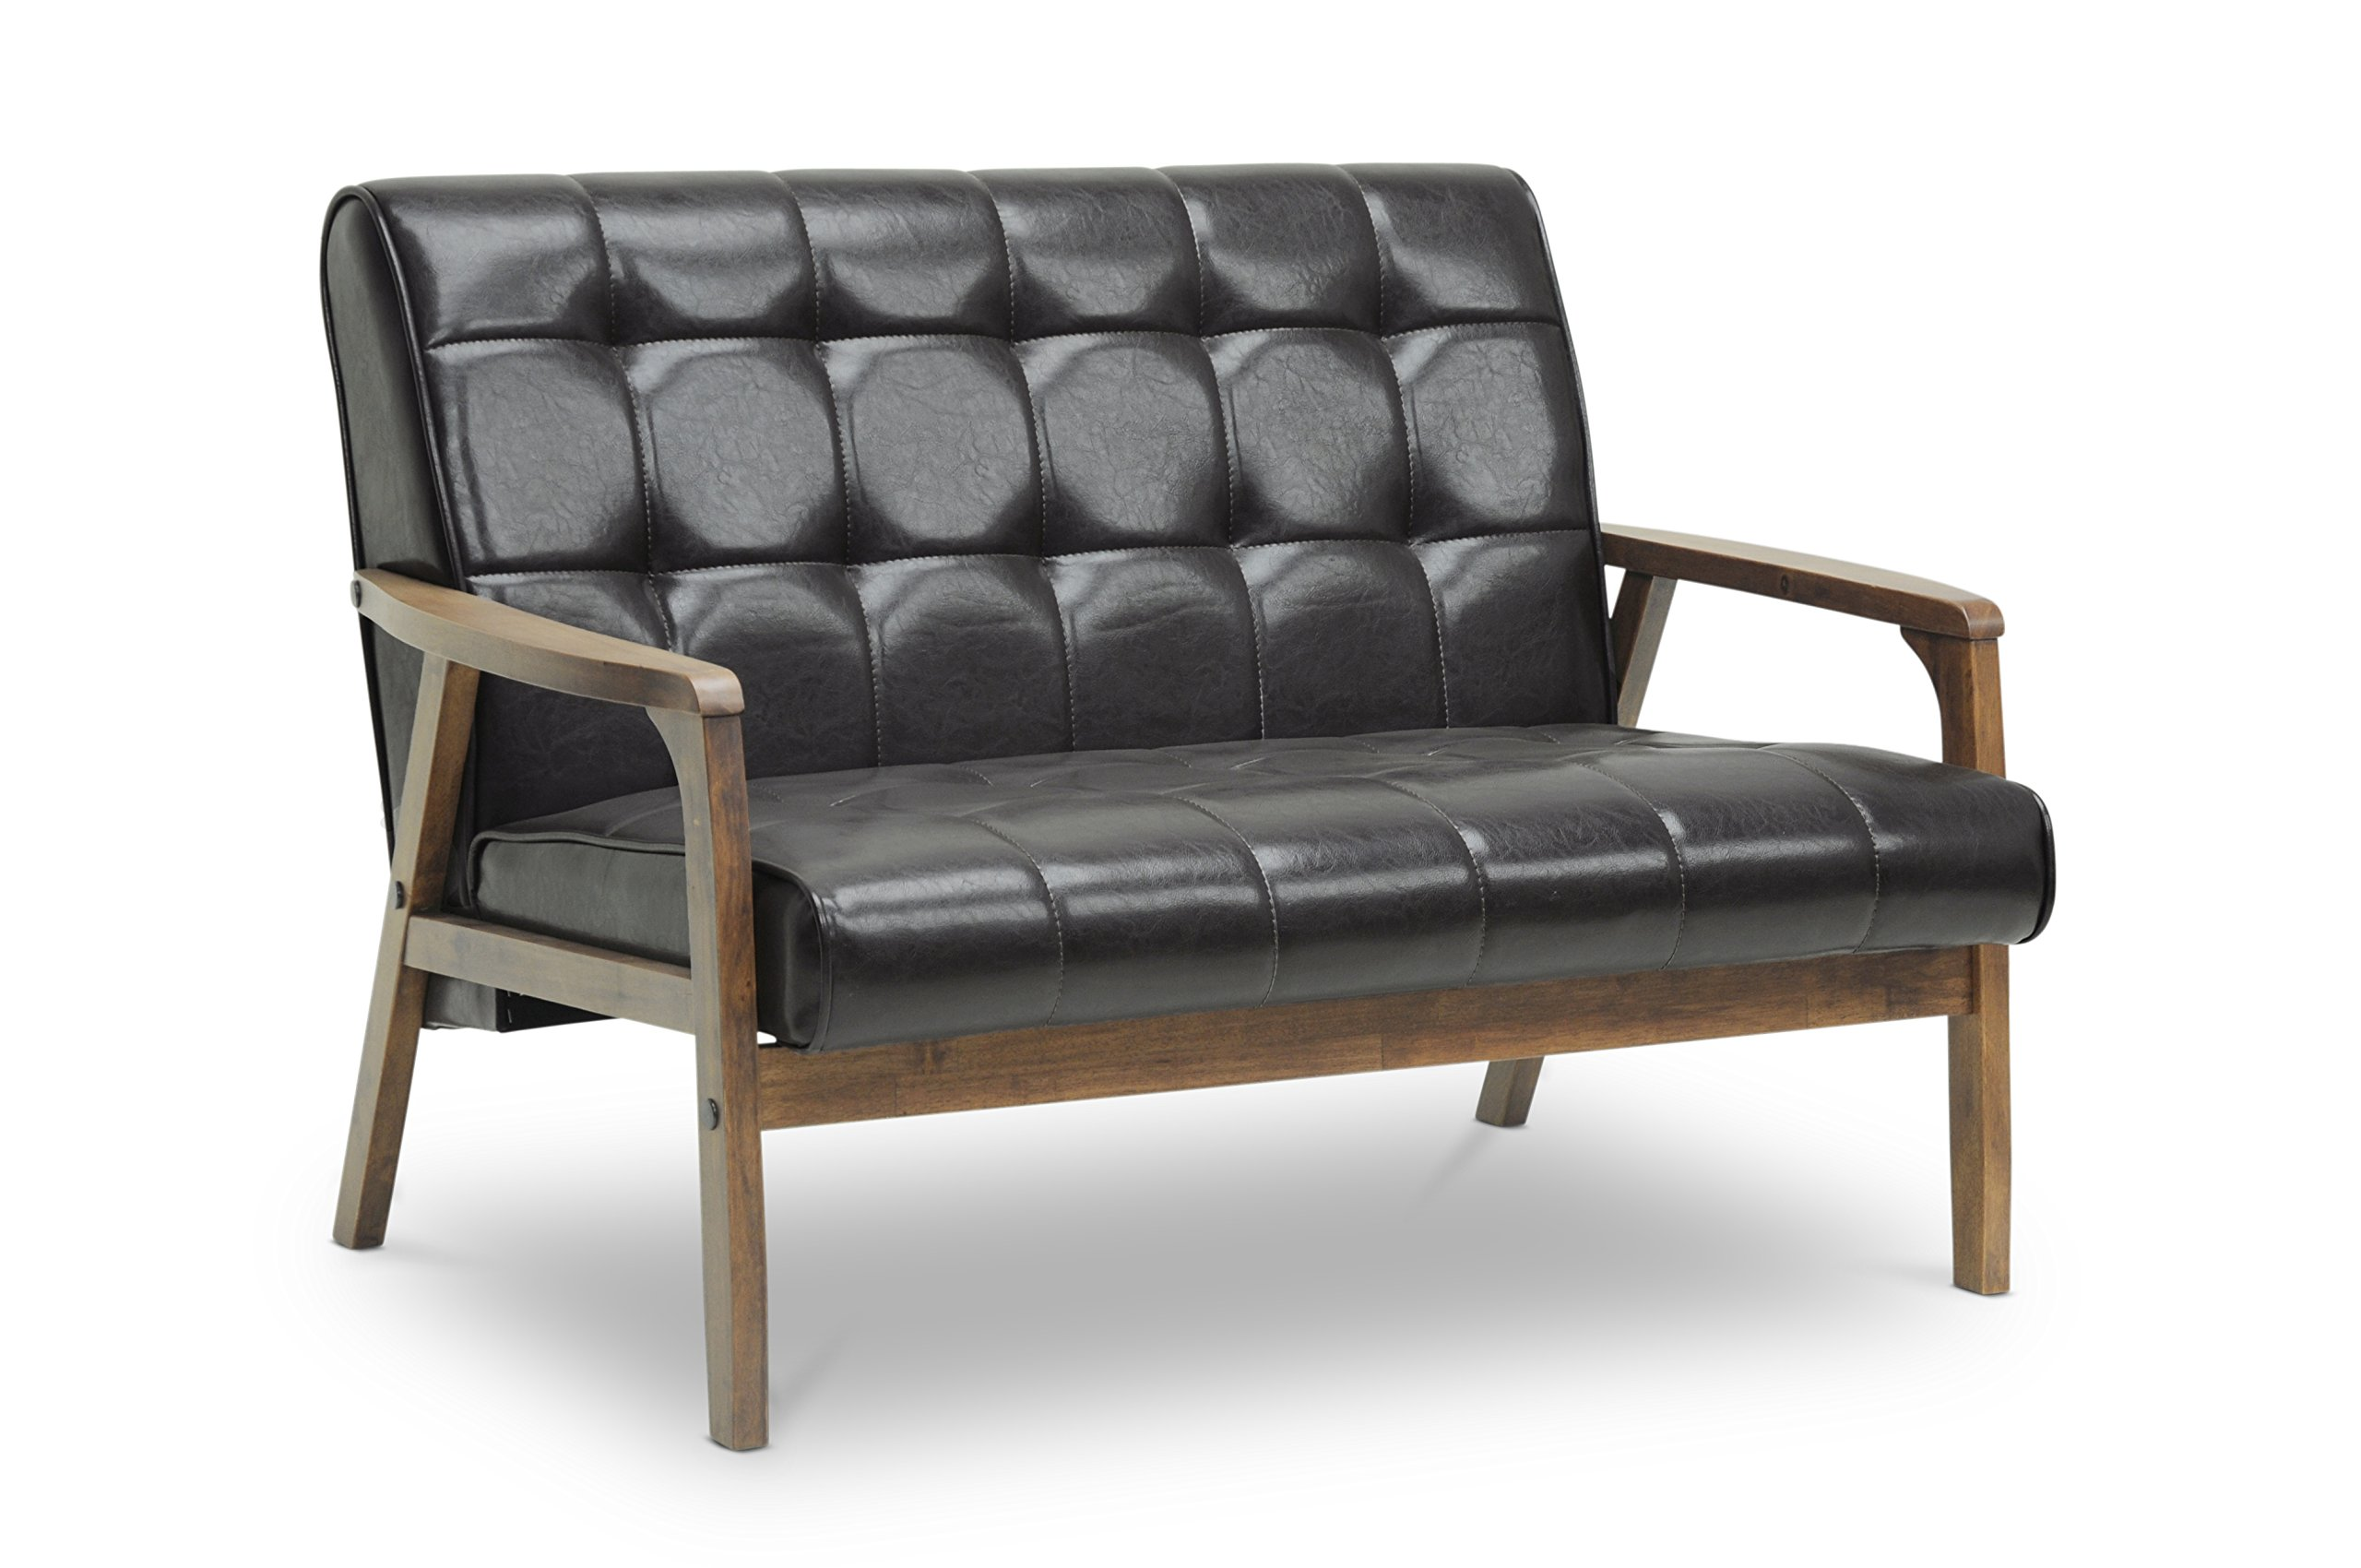 Baxton Studio Mid-Century Masterpieces Love Seat, Brown by Baxton Studio